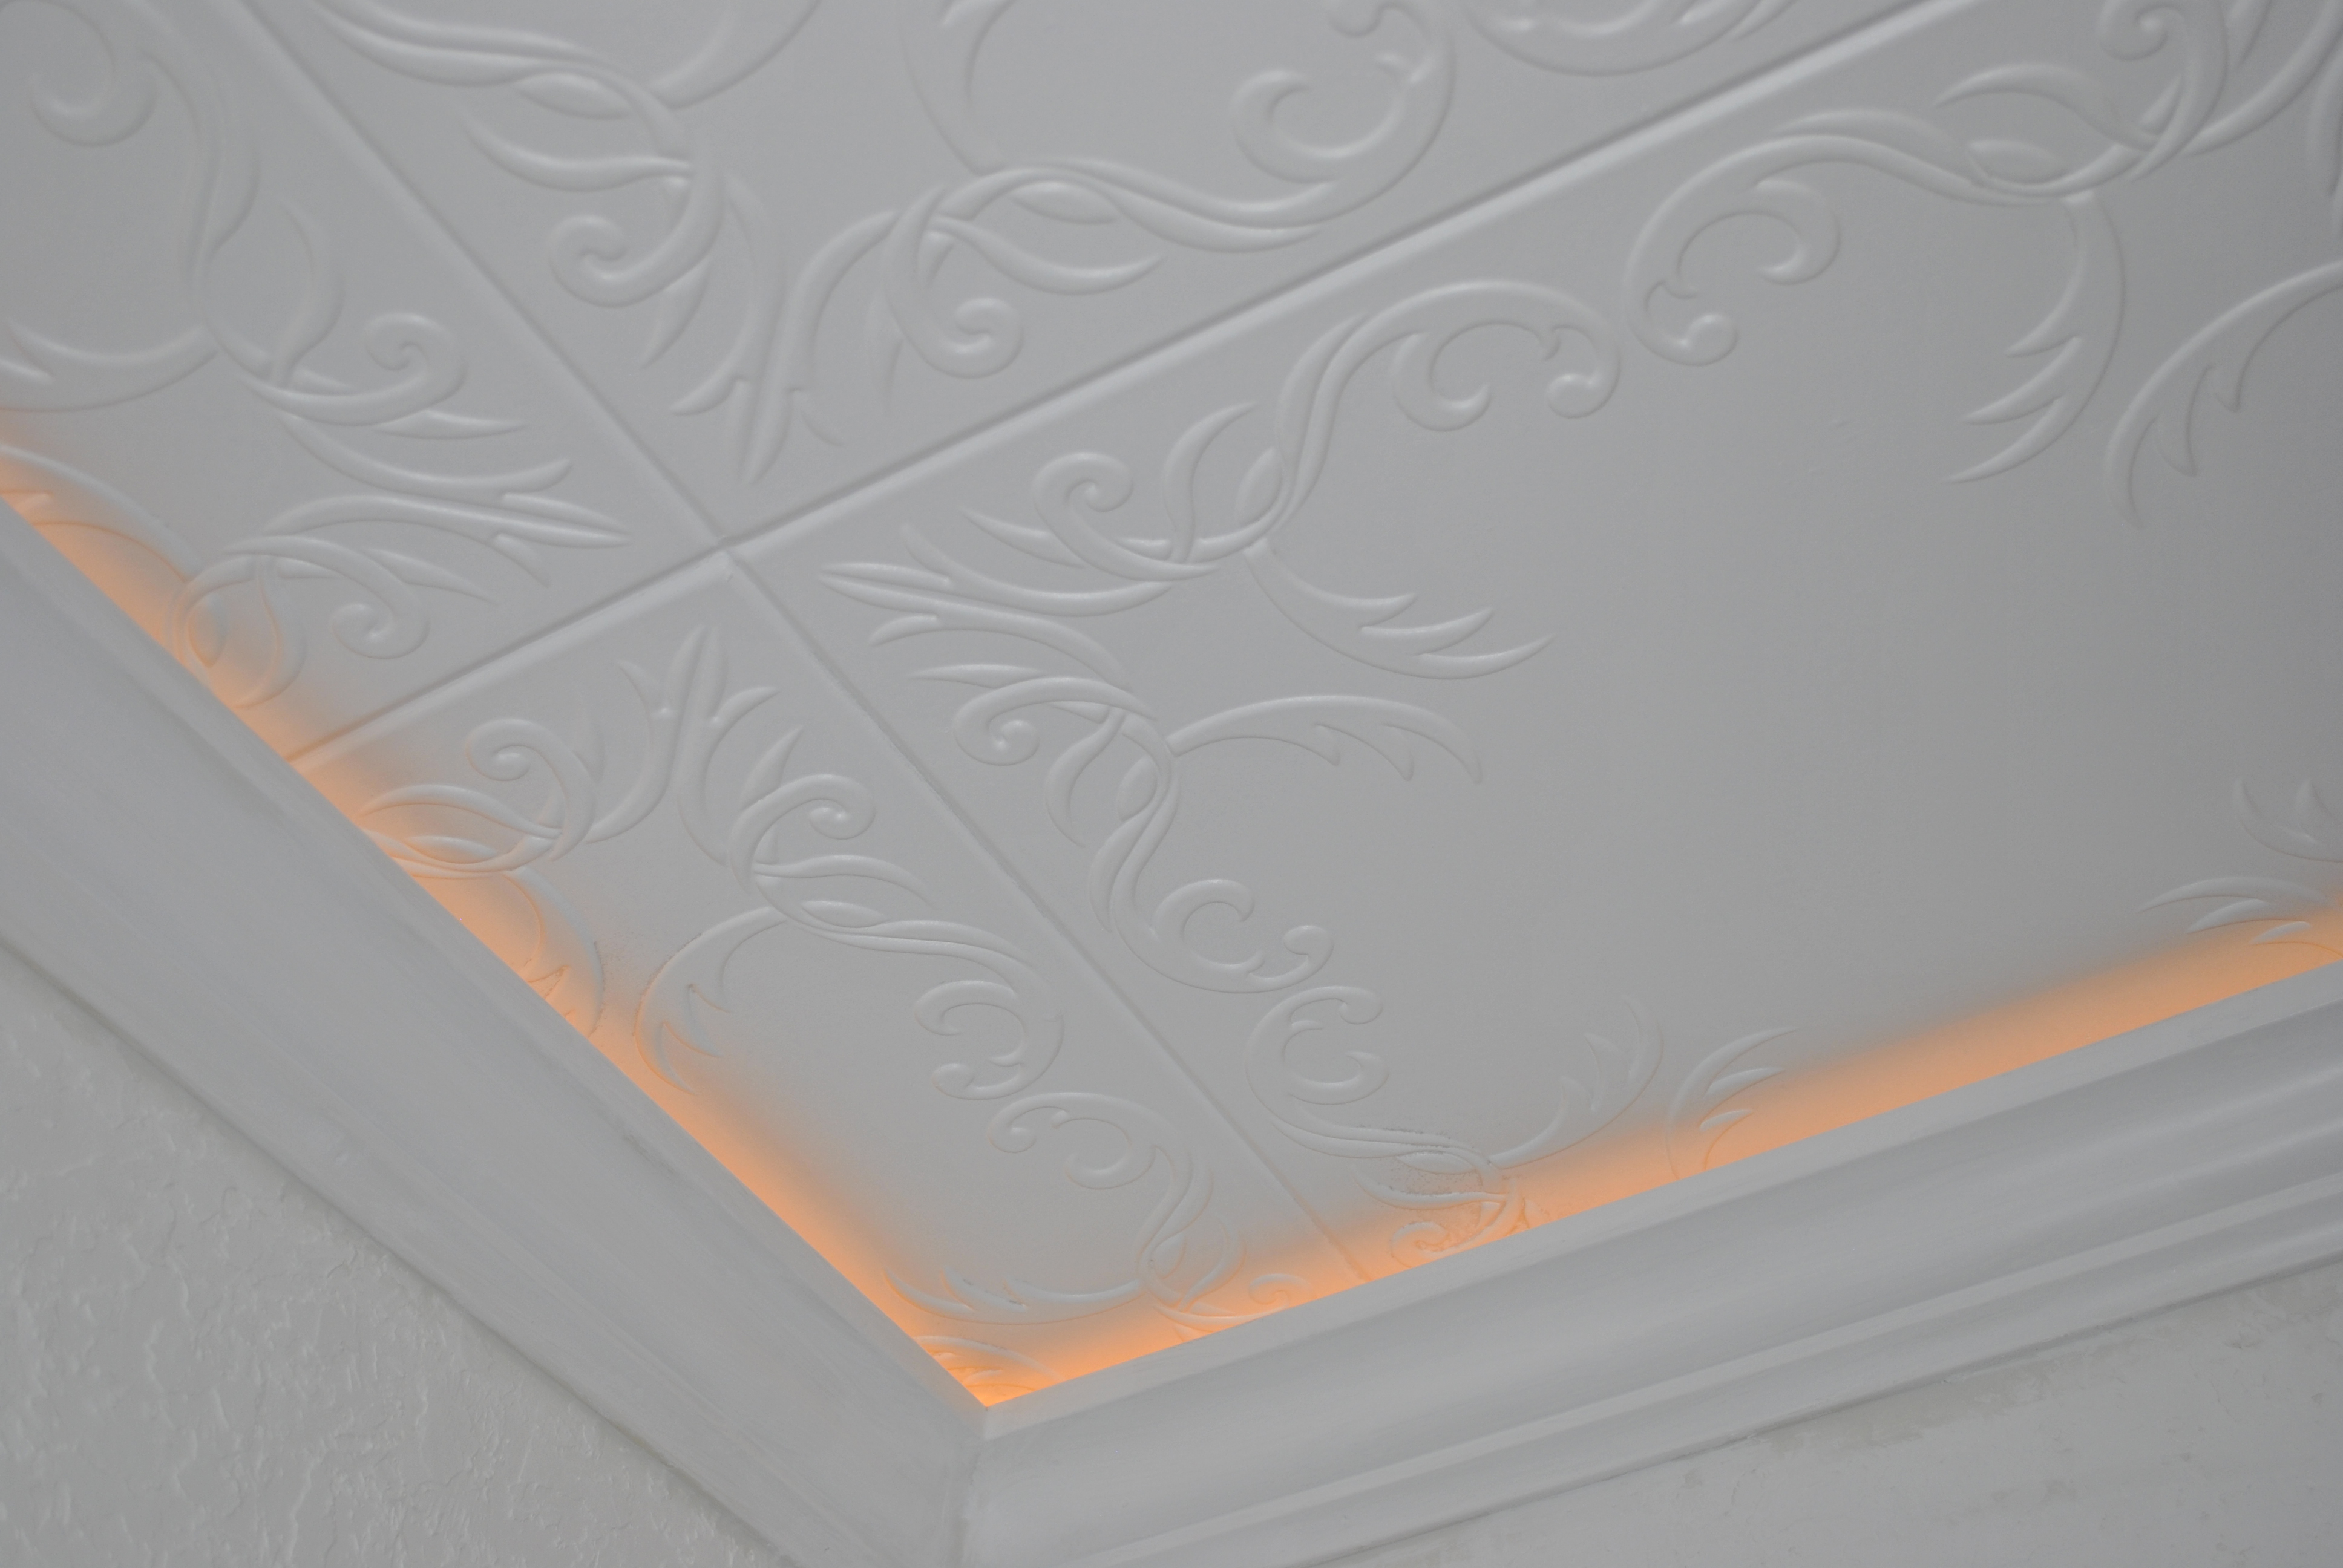 Roven Foam Ceiling Tile installed in a kitchen